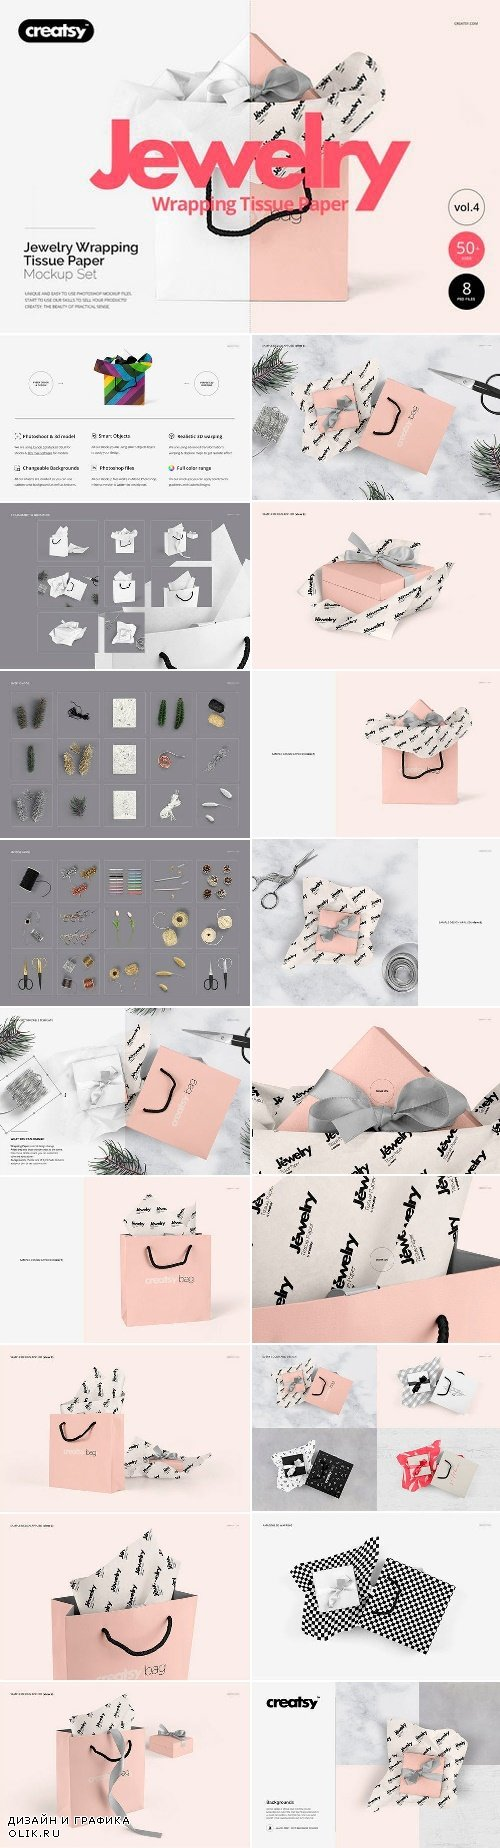 Jewelry Wrapping Tissue Paper Mockup 2142965